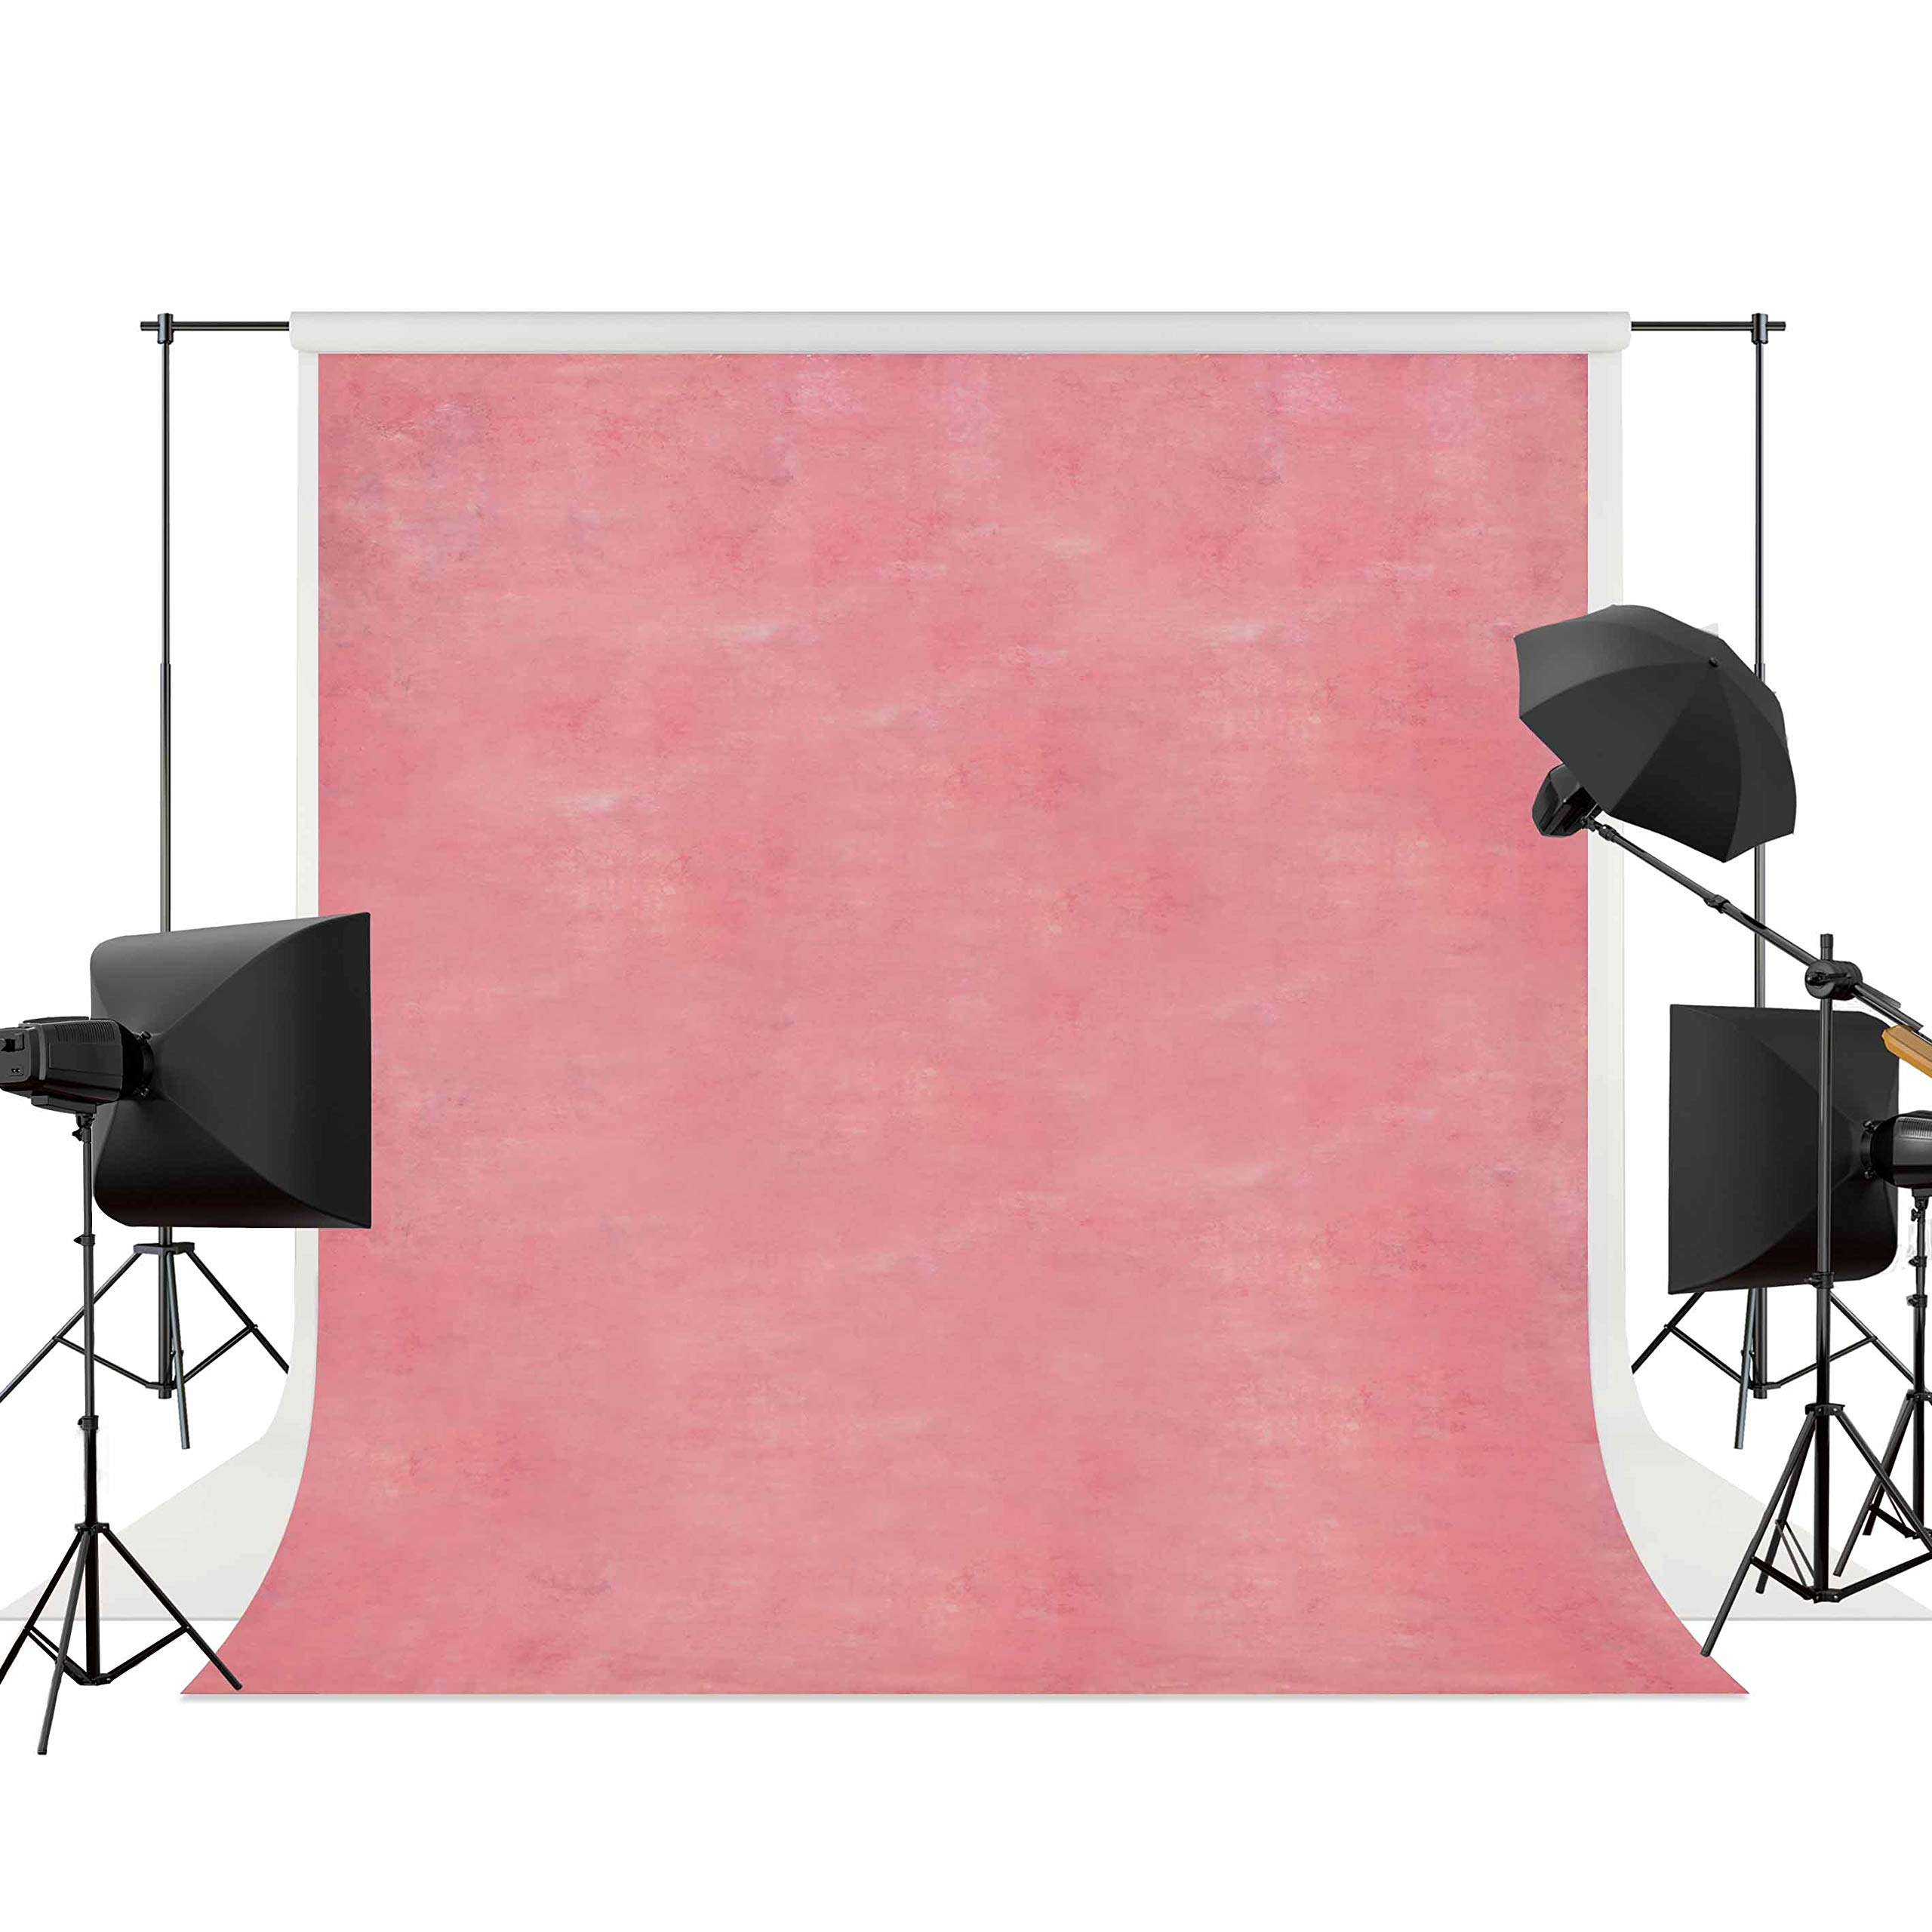 Allenjoy 10x10ft Abstract Solid Pink Photography Backdrops Printed Old Master Photo Background Indoor Portrait Studio Booth Photographer Shot Props Baby Shower Wedding Photocall